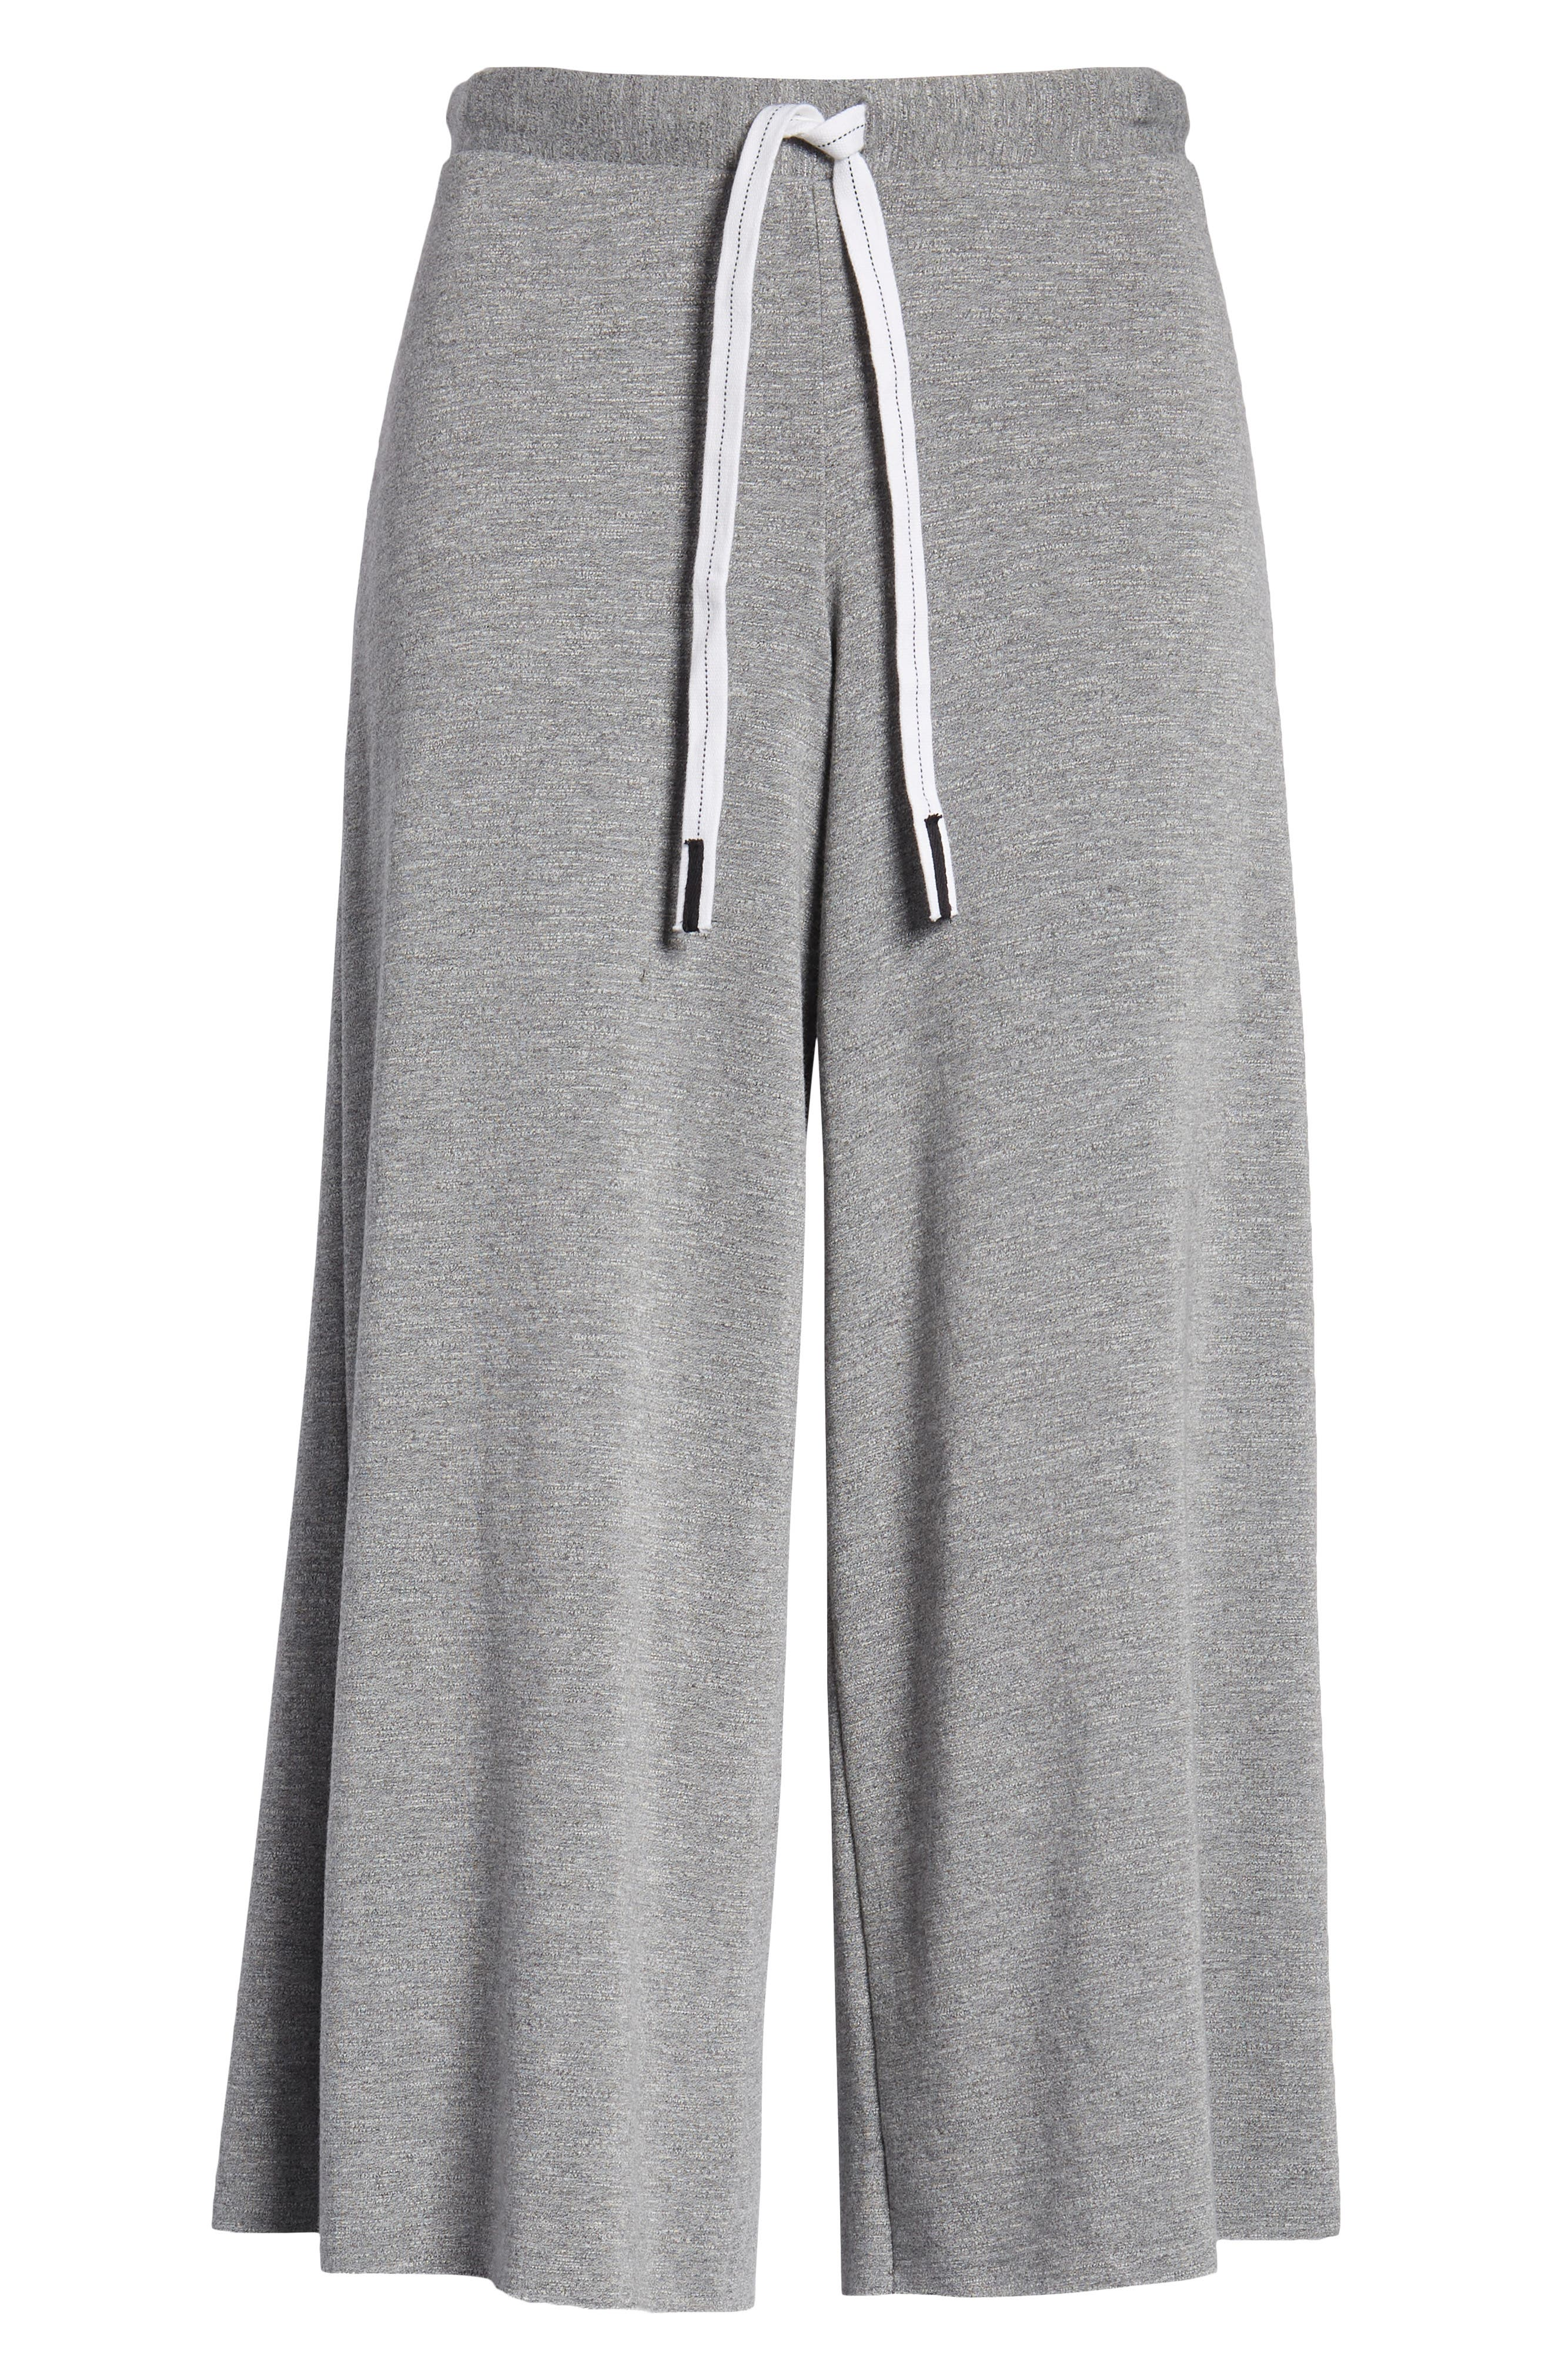 Flare Fleece Pants,                             Alternate thumbnail 7, color,                             Heather Grey